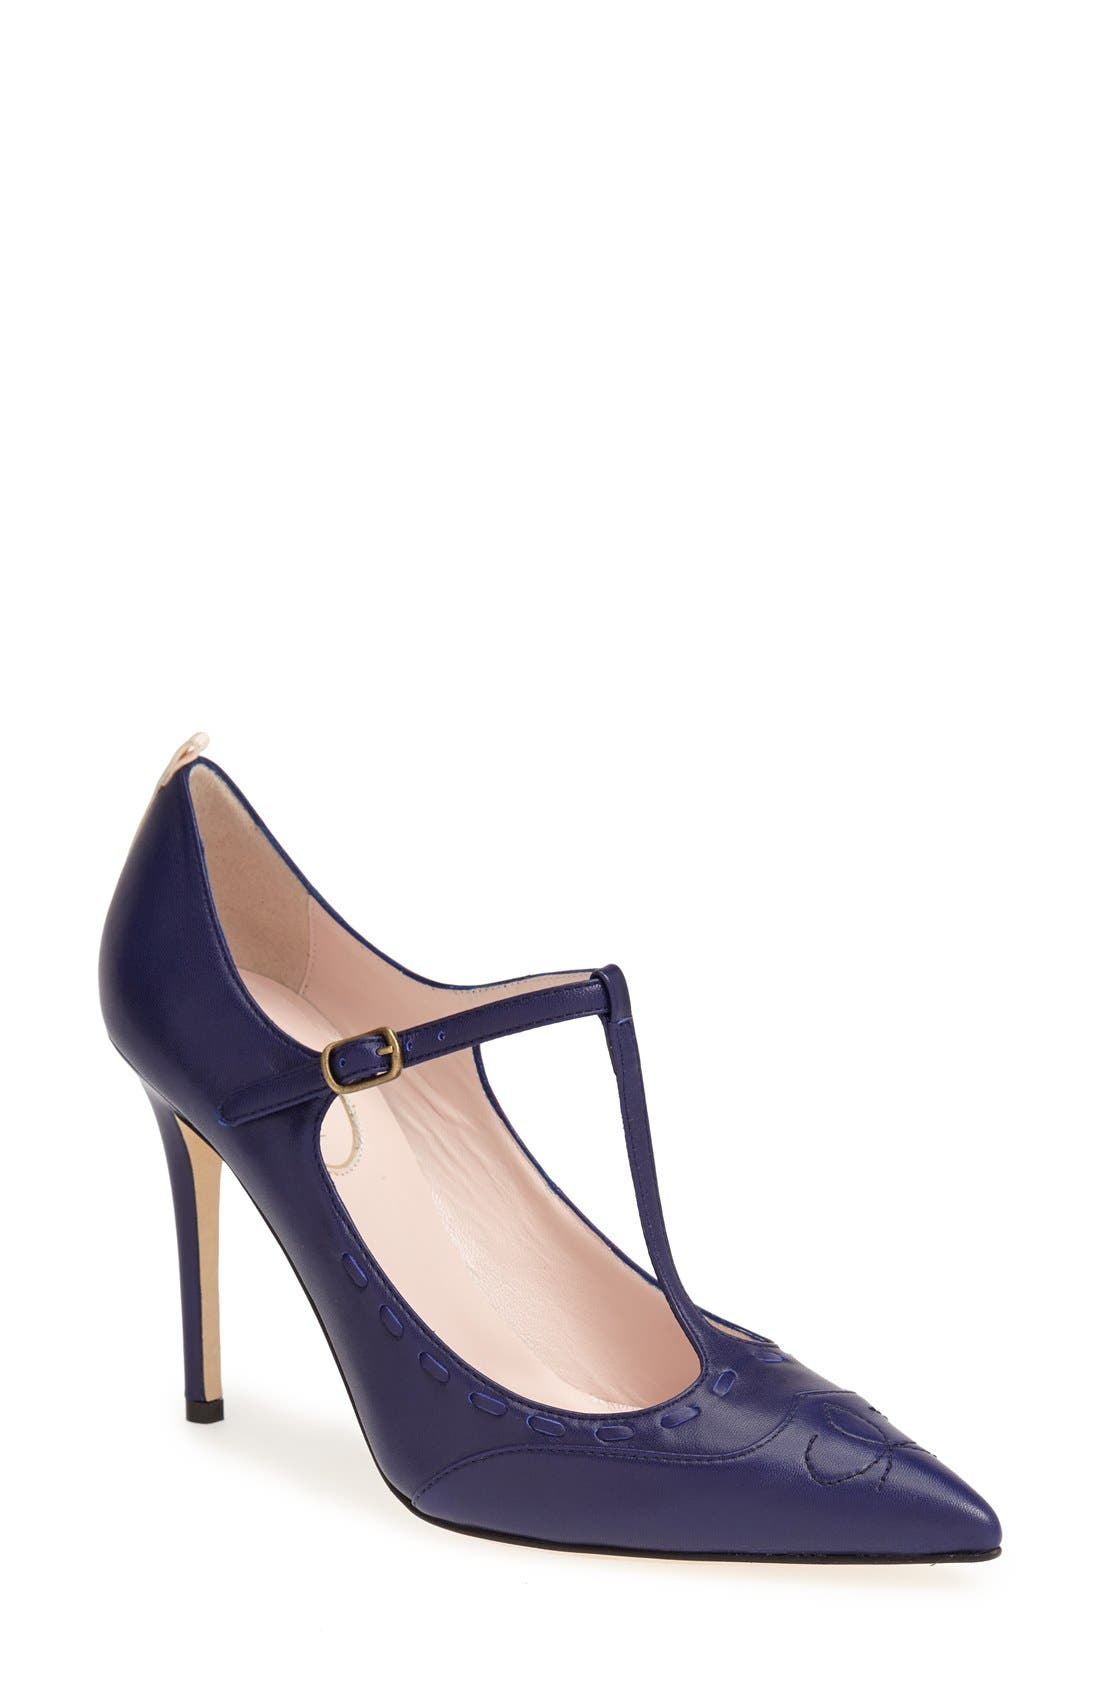 Alternate Image 1 Selected - SJP 'Blythe' Leather T-Strap Mary Jane Pump (Women)